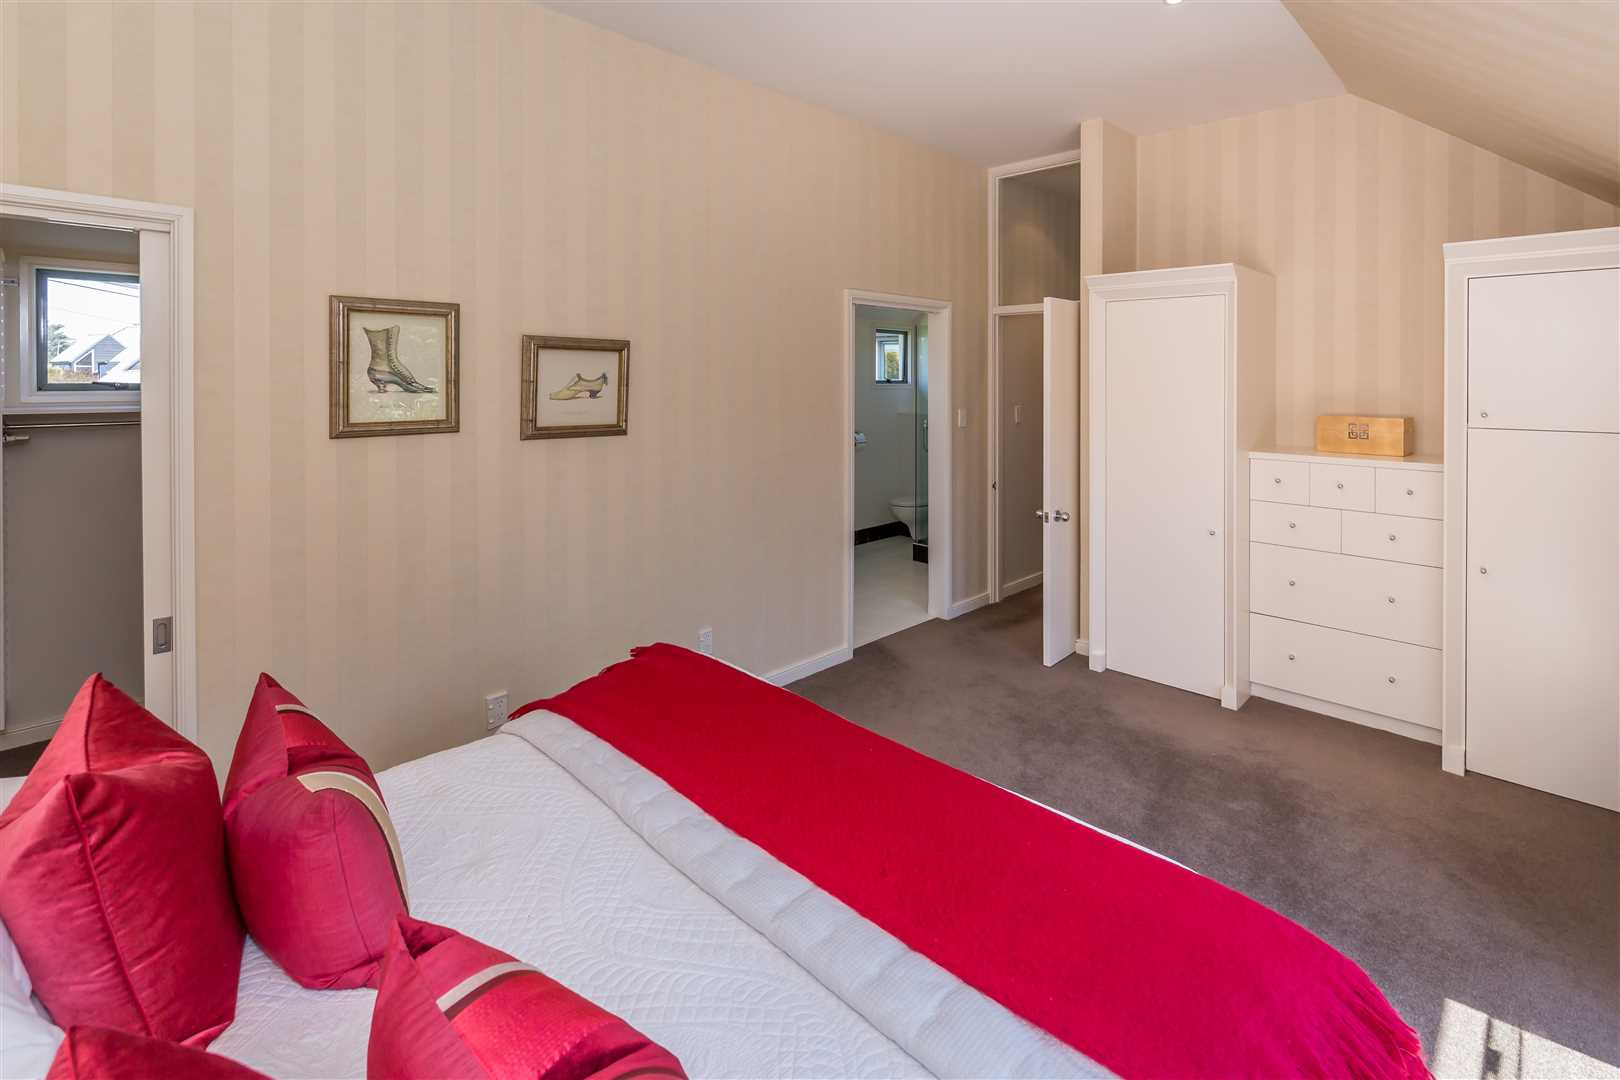 Bedroom 1 with walk in wardrobe, built in wardrobes, ensuite and balcony